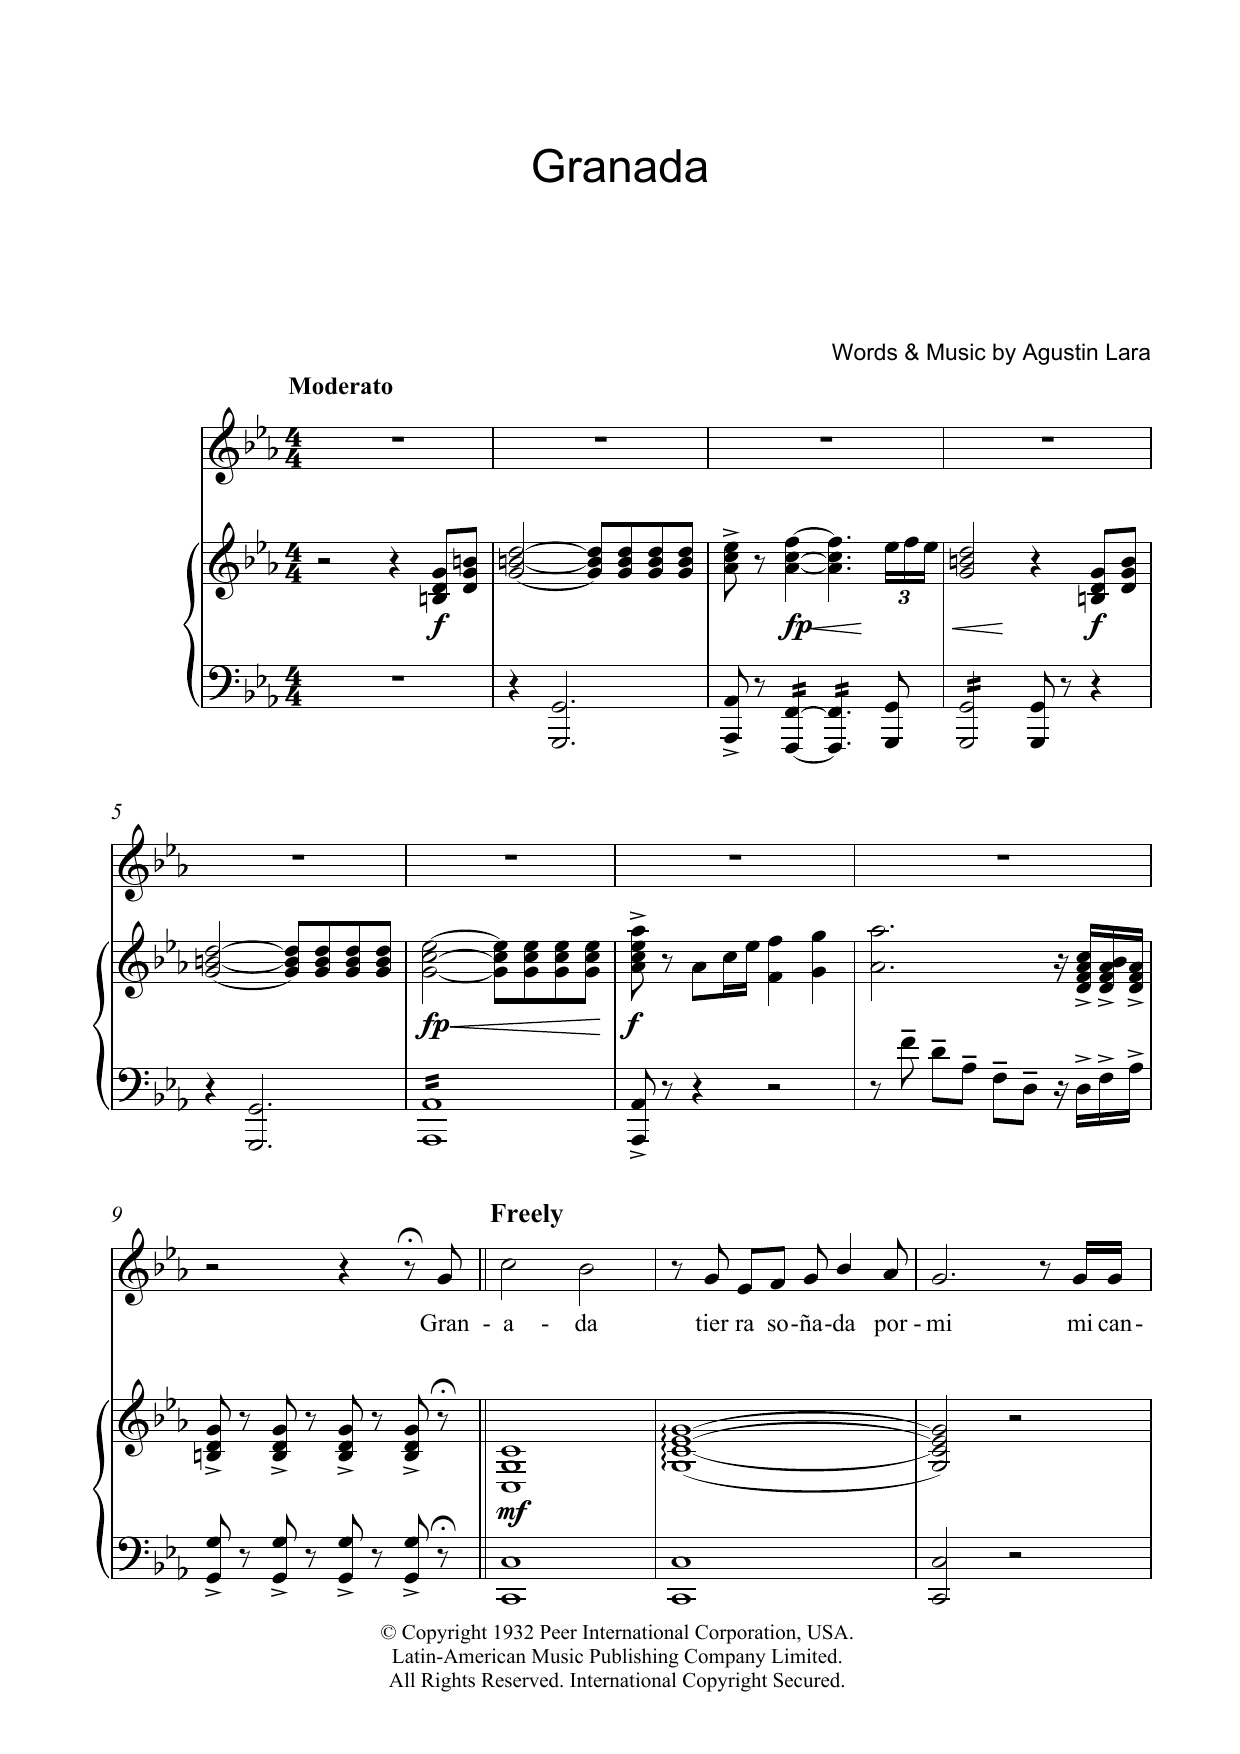 Luciano Pavarotti Granada sheet music preview music notes and score for Piano, Vocal & Guitar including 6 page(s)